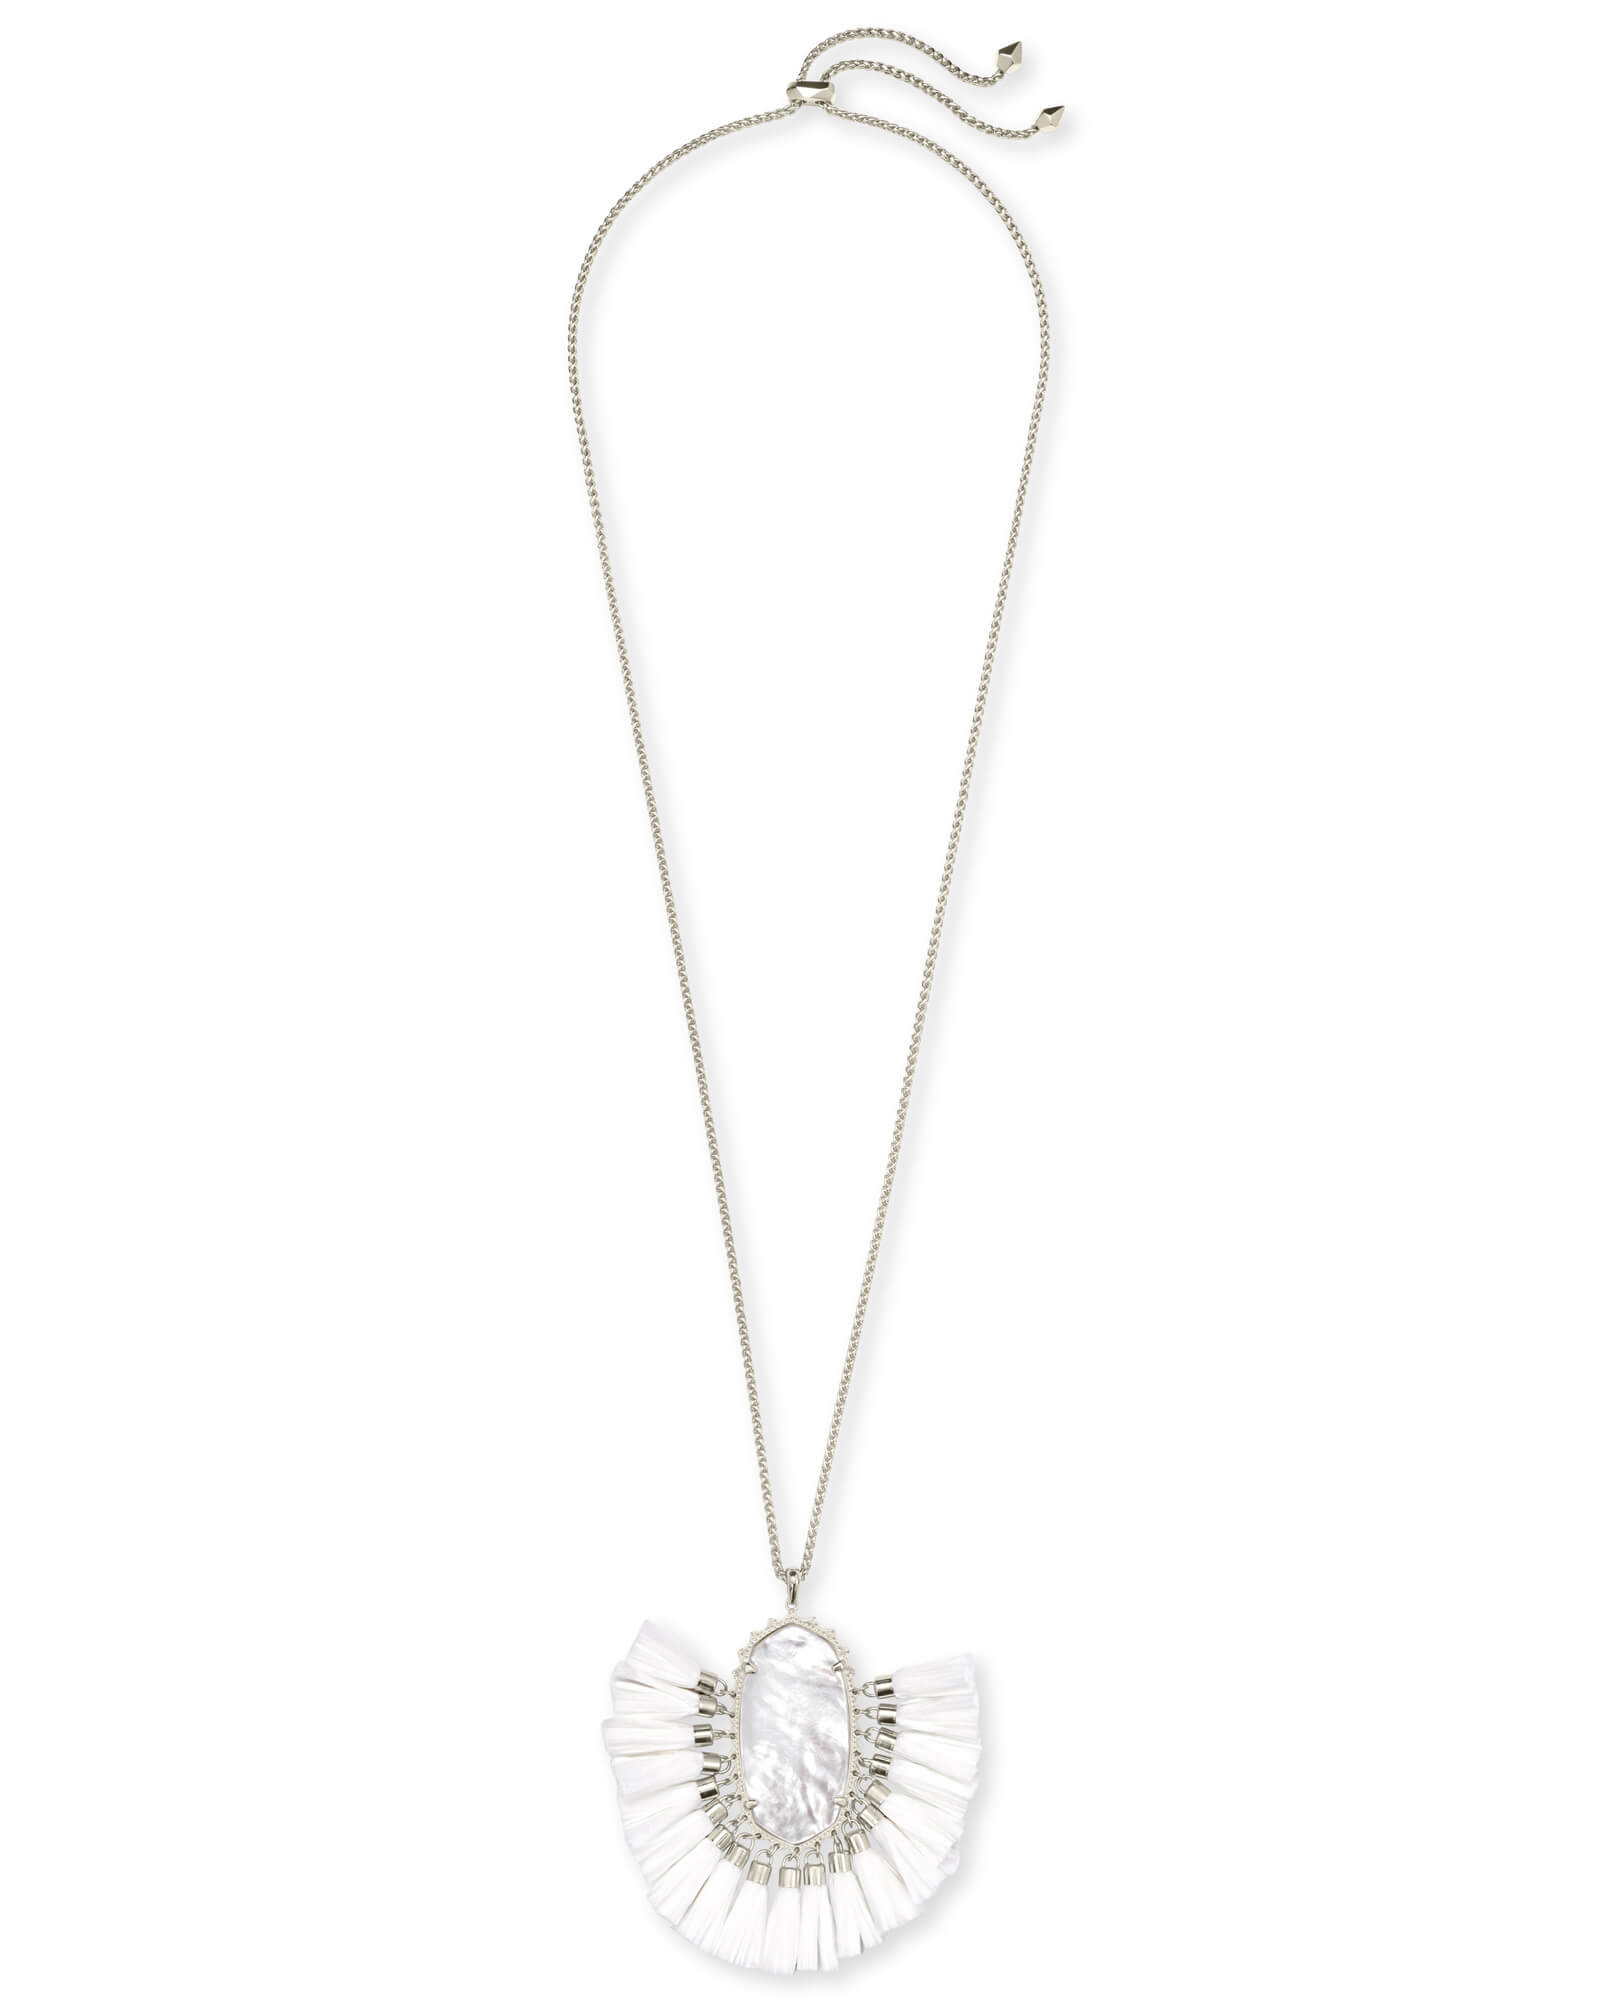 Betsy Silver Long Pendant Necklace In Ivory Mother of Pearl